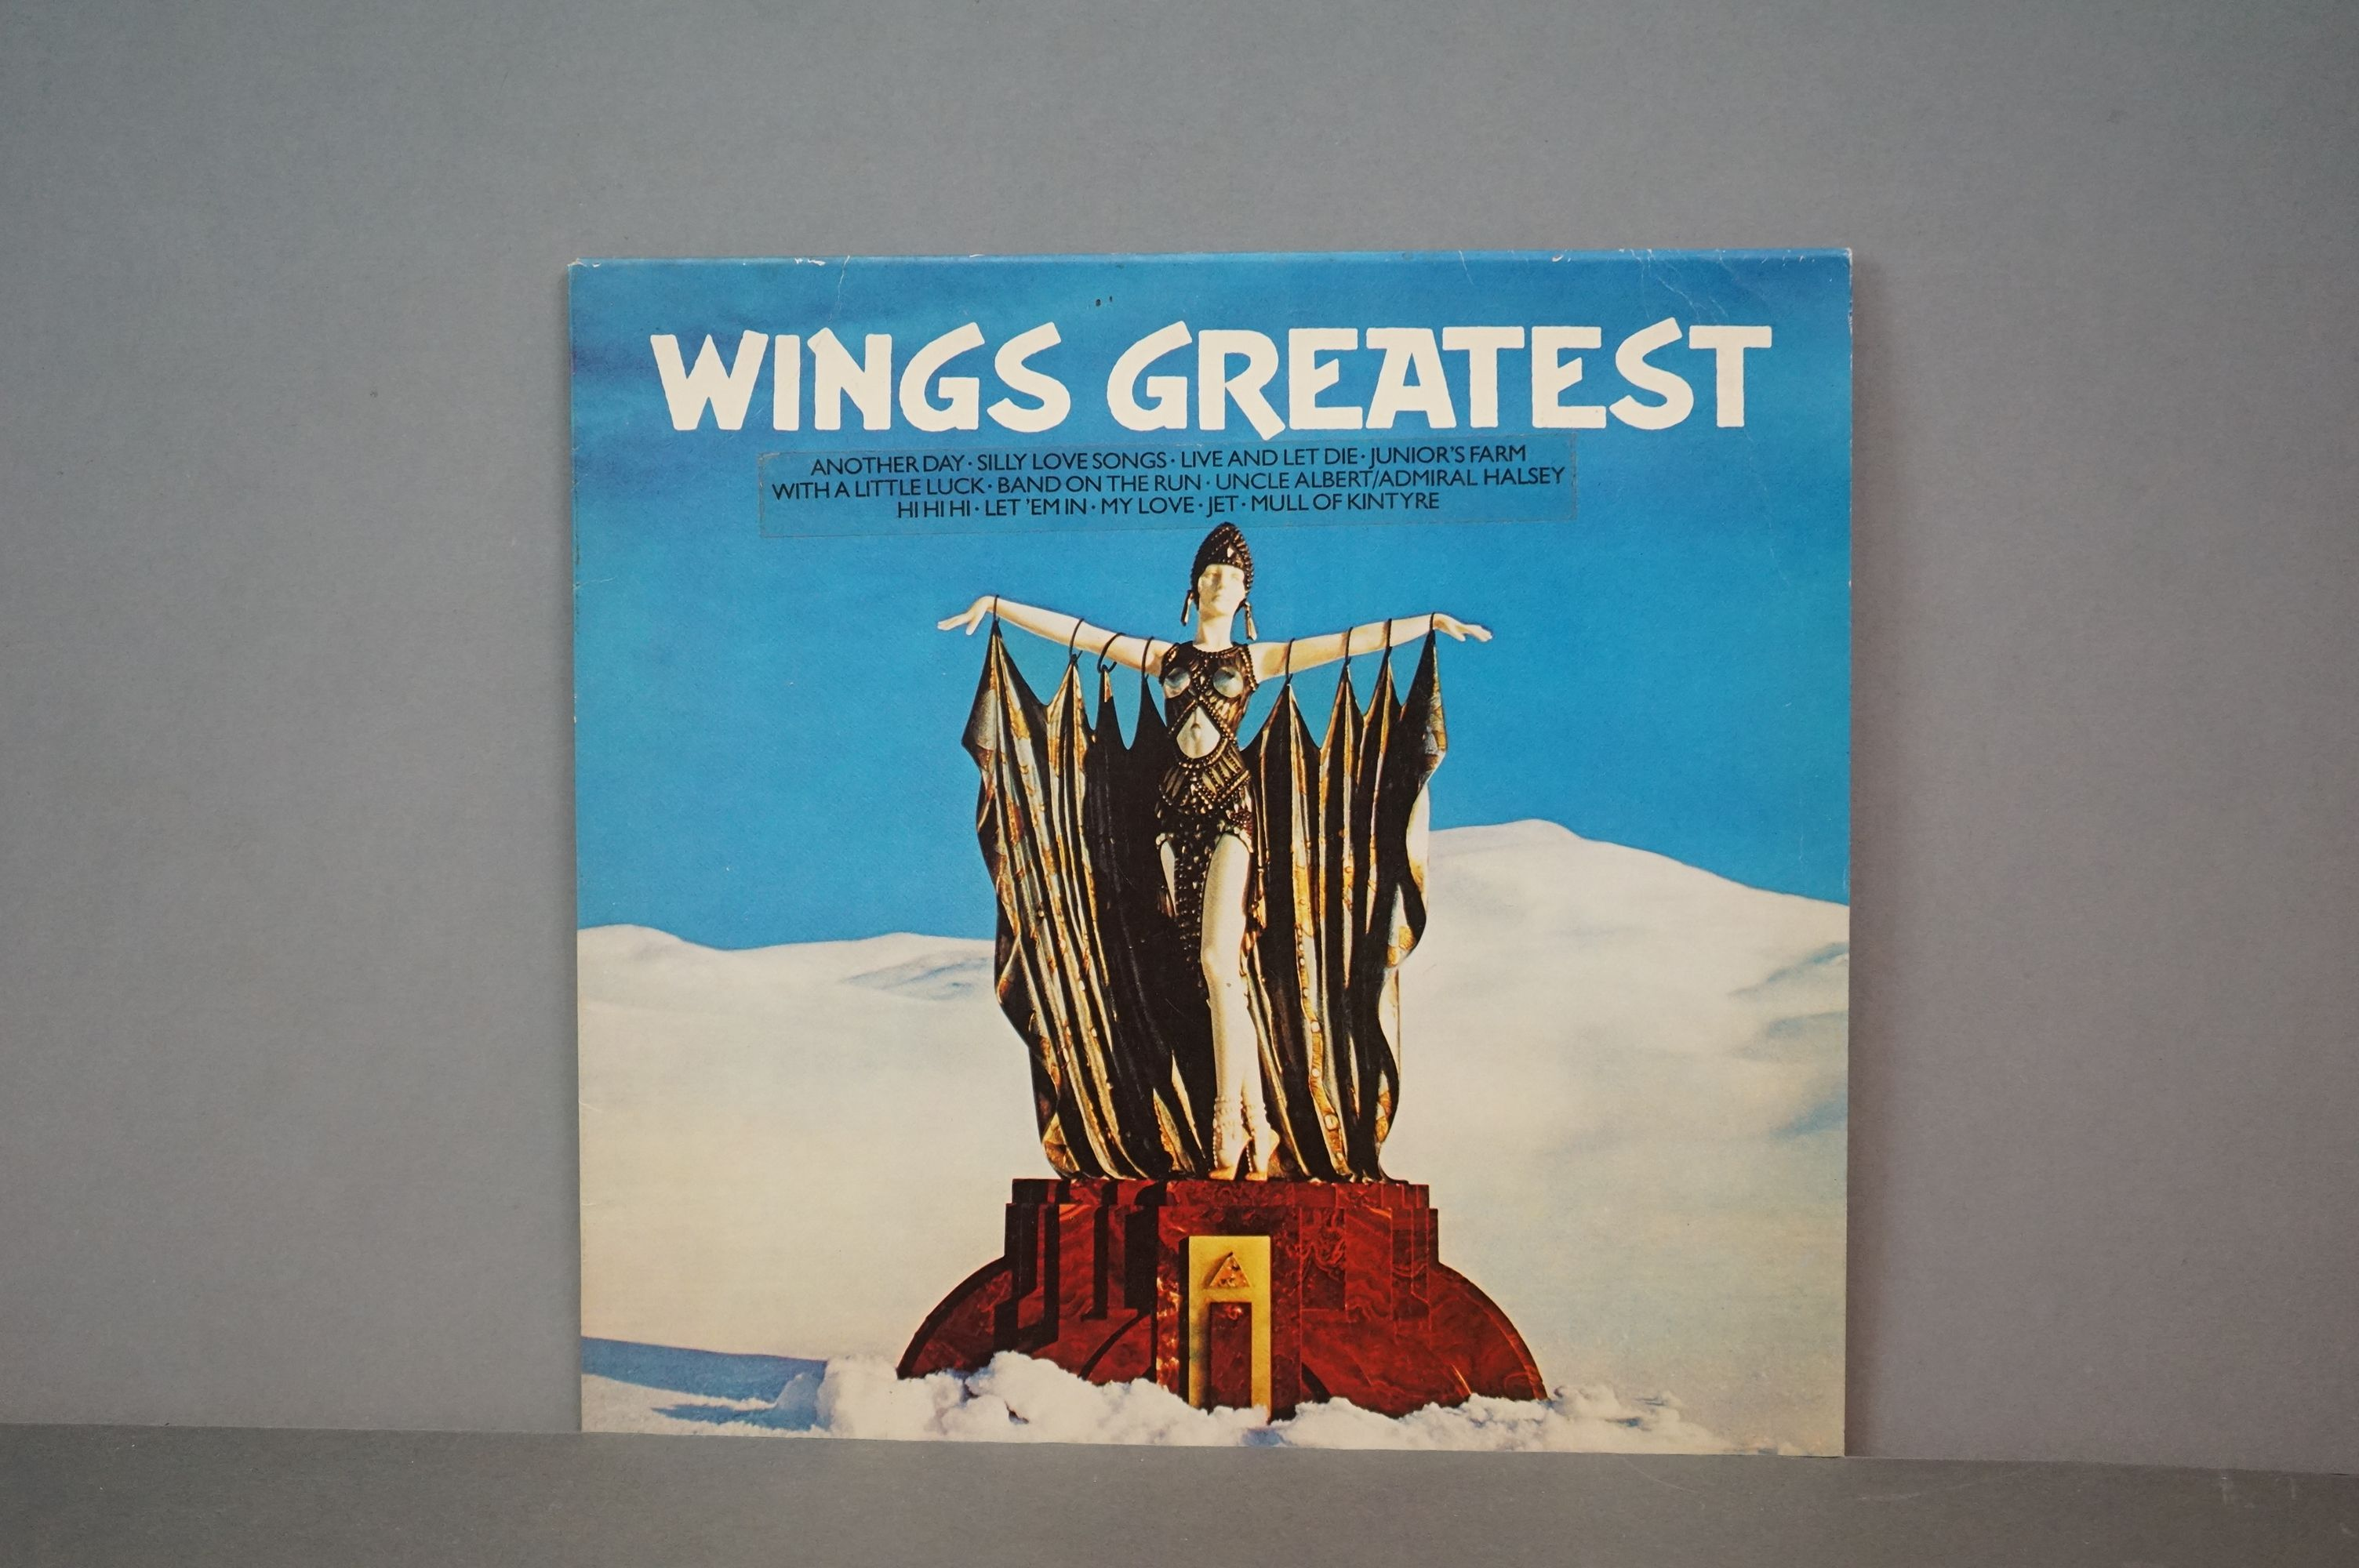 Vinyl - The Beatles and band members LPs to include 1962-1966 and 1967-1970 (black vinyl), Wings - Image 11 of 11